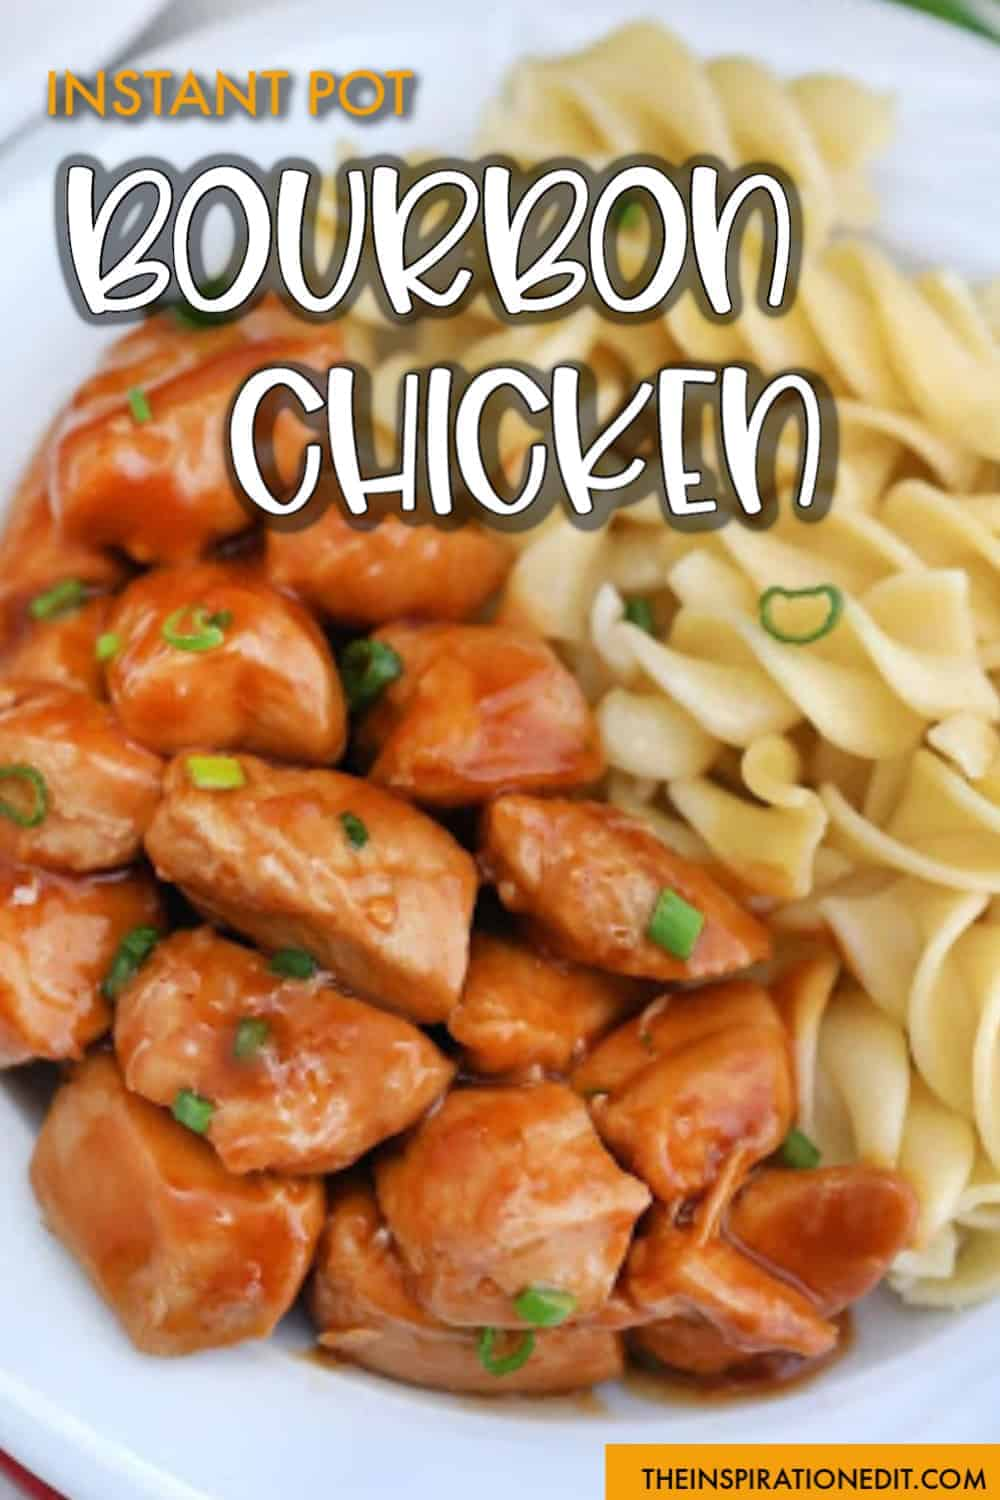 Instant Pot Bourbon Chicken on a white plate